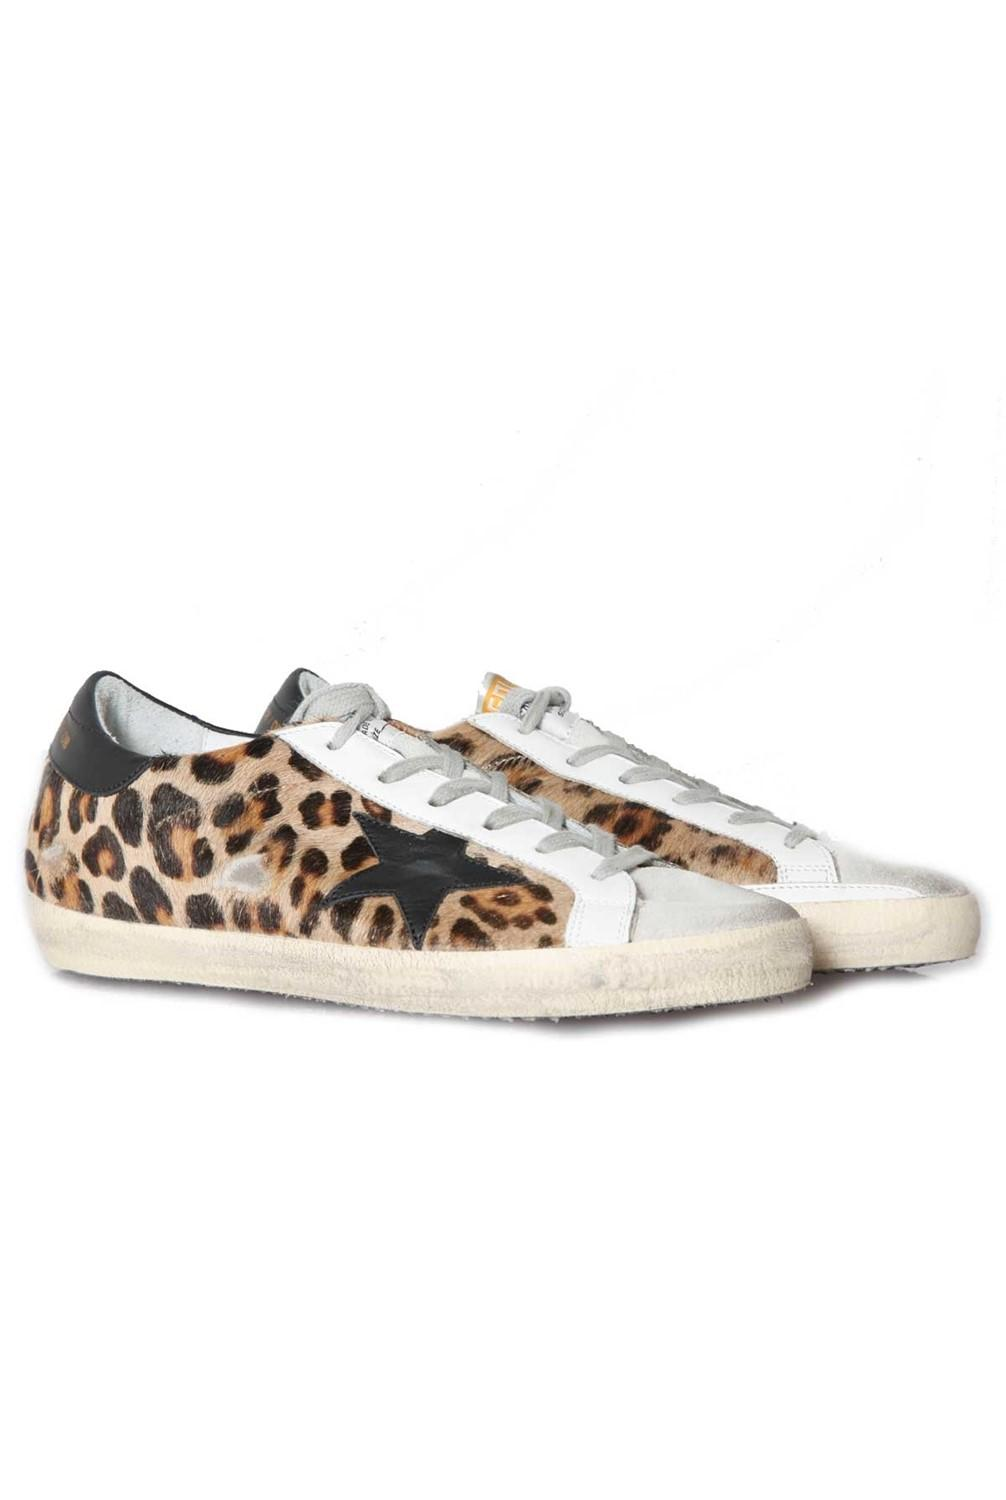 2e4e2a53c2914 Golden Goose Deluxe Brand Sneakers Superstar Snow Leopard Black Star ...